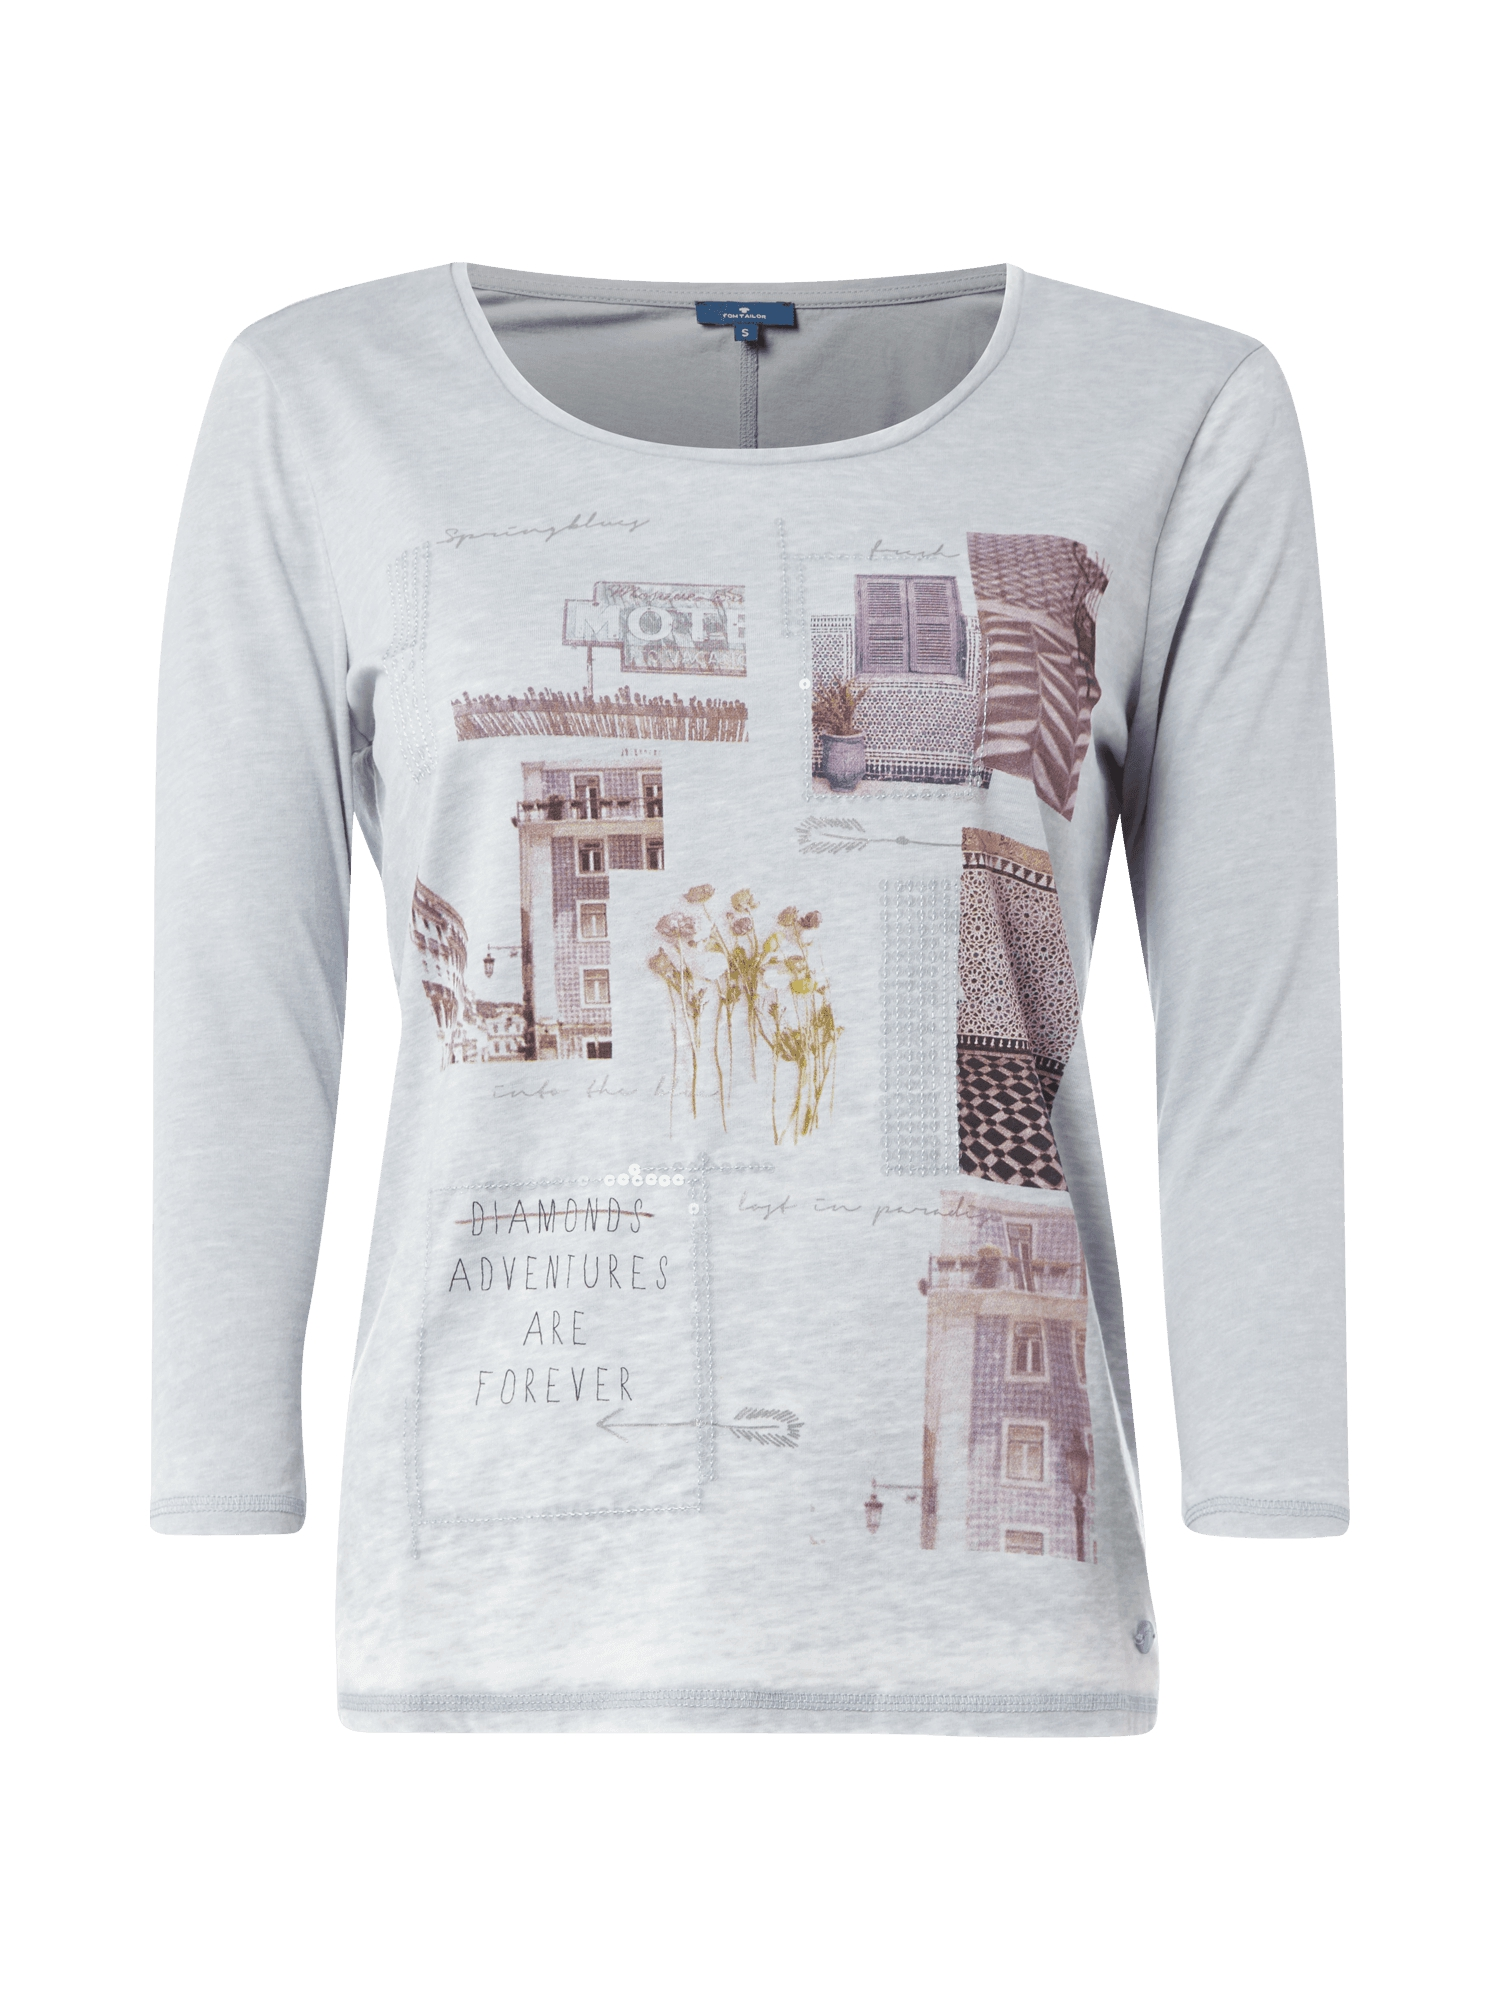 tom tailor shirt mit print und pailletten besatz damen t shirt neu ebay. Black Bedroom Furniture Sets. Home Design Ideas